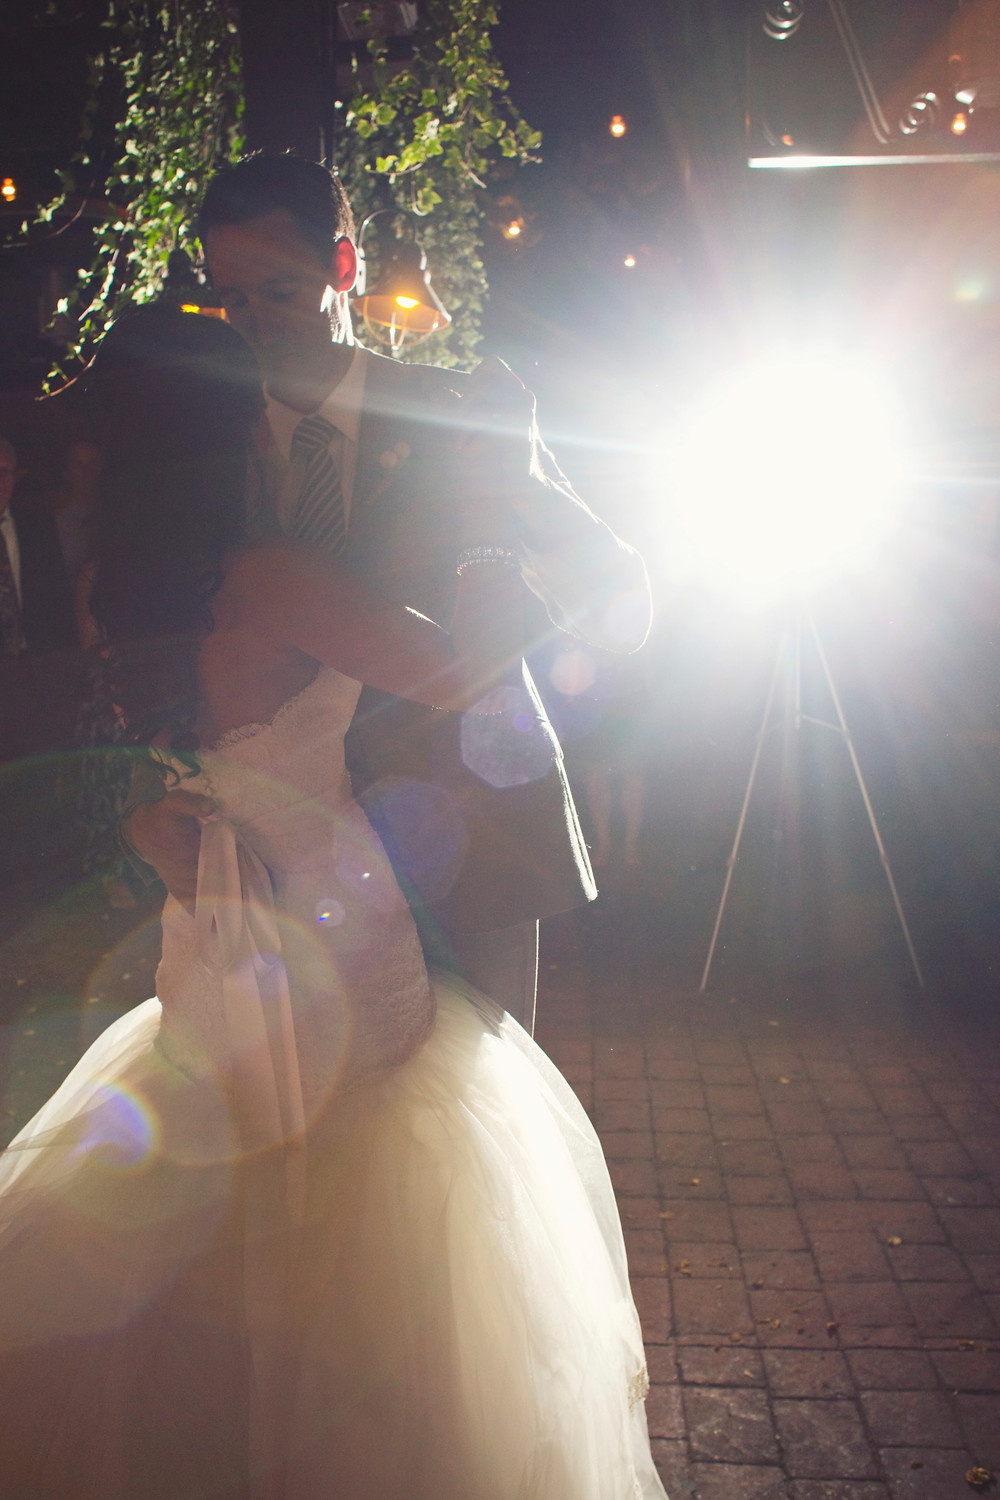 A bride and groom dance together beneath the stars as guests watch.